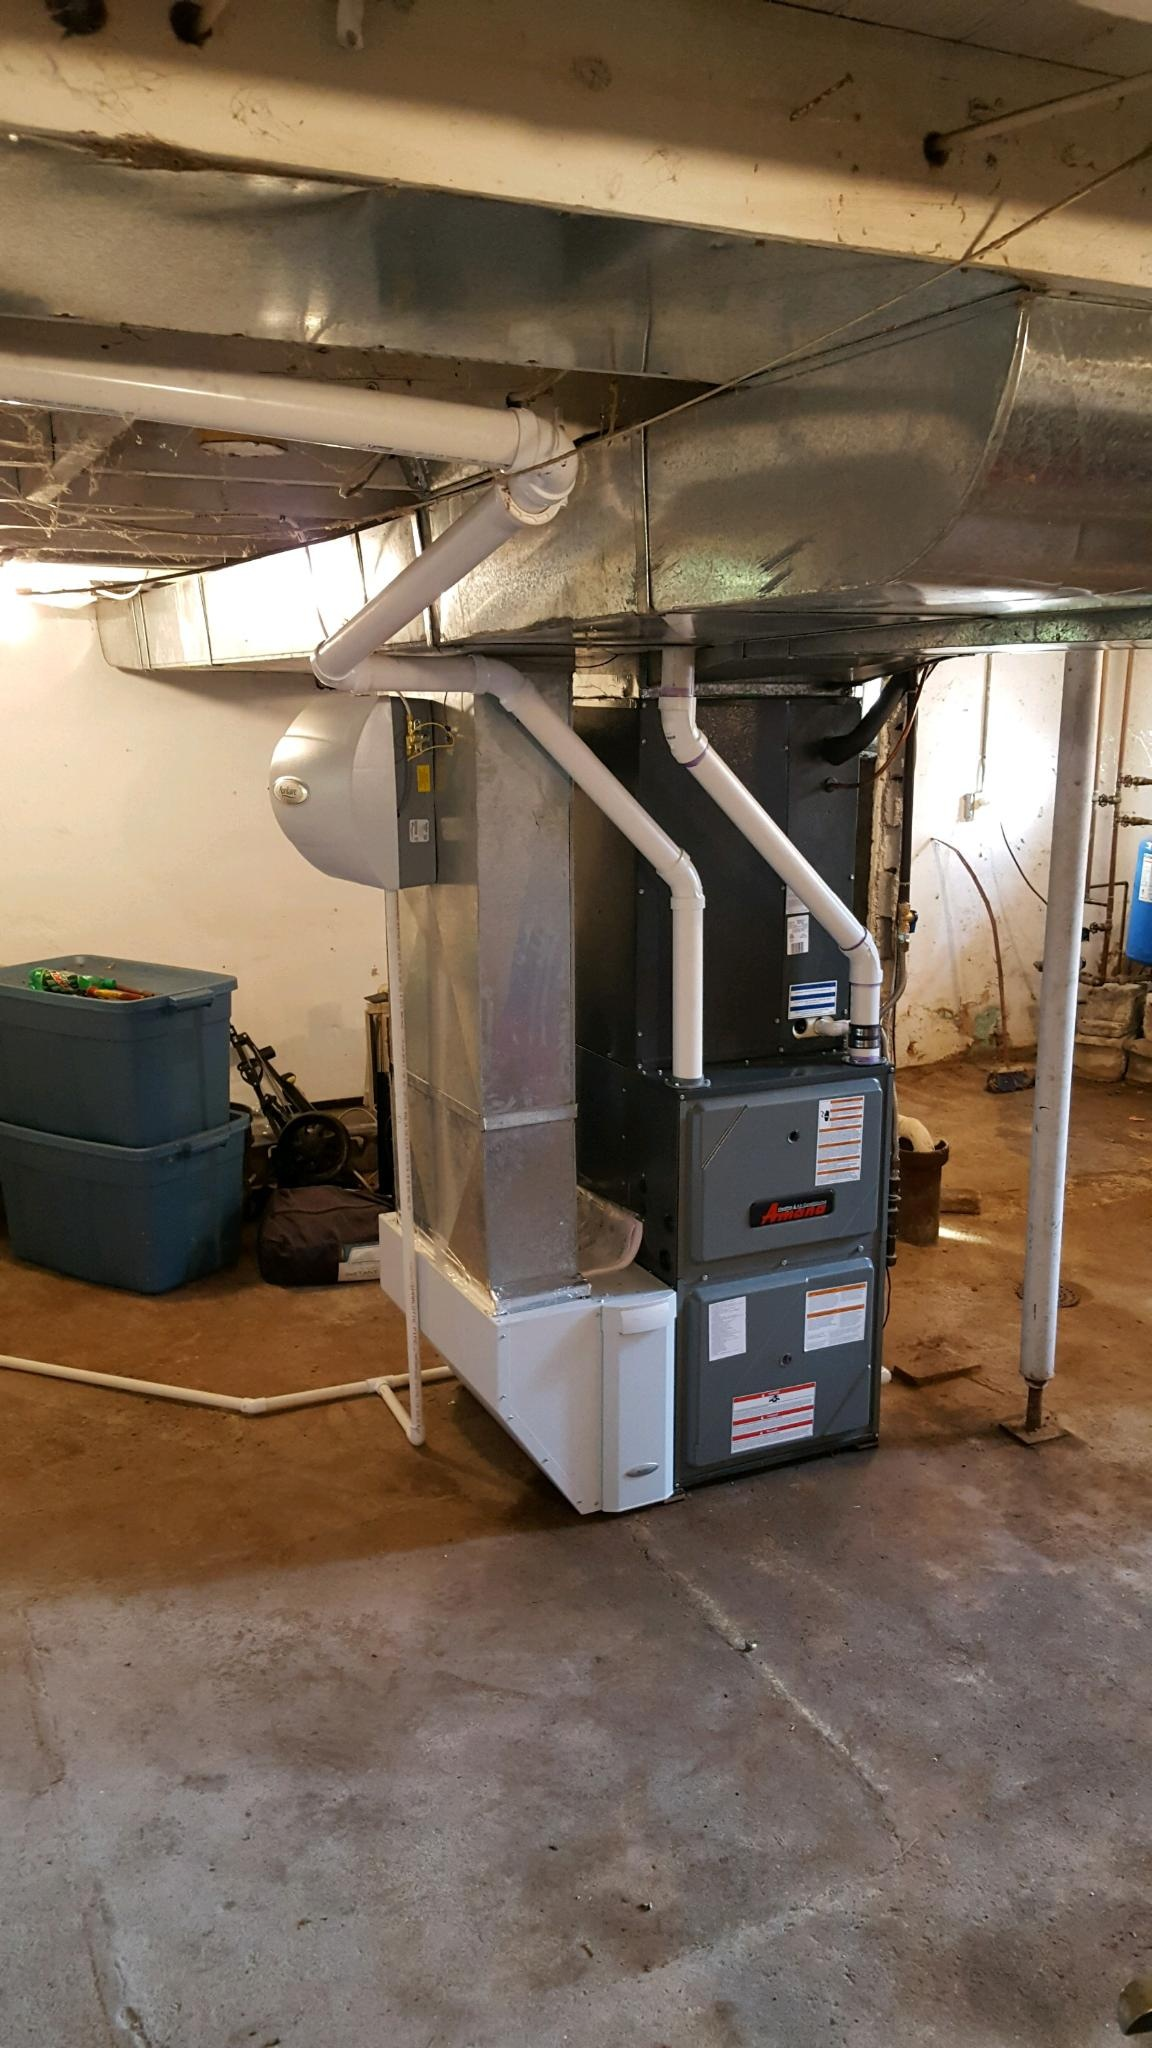 A very clean furnace installation!